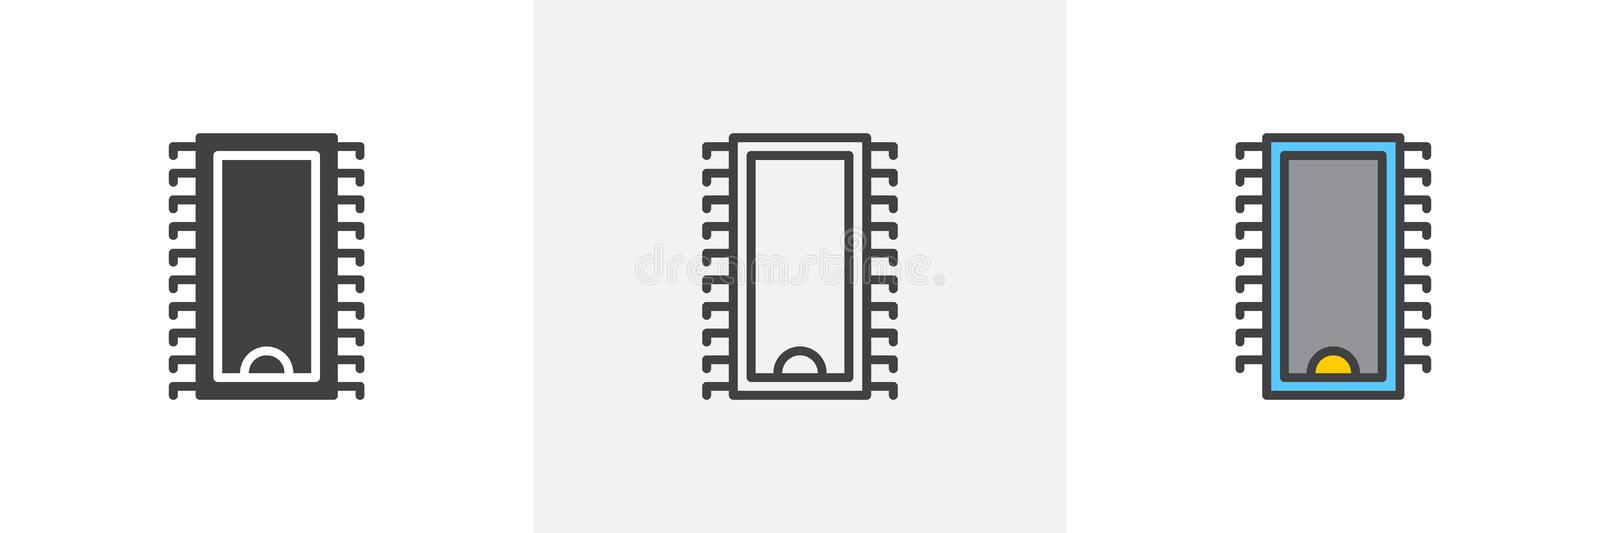 Computer chip icon stock illustration